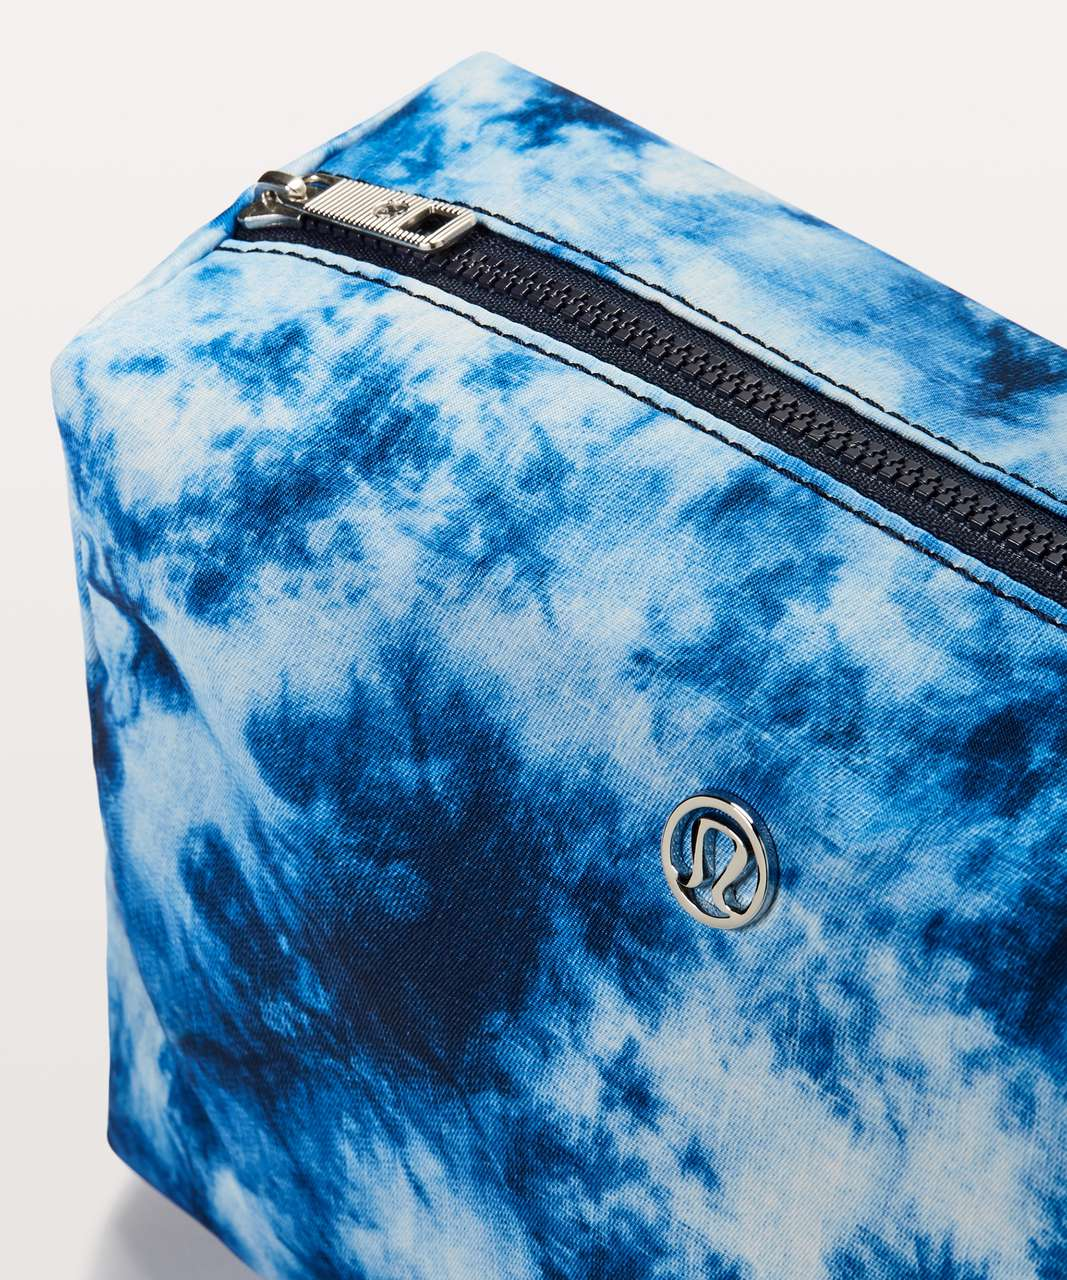 Lululemon All Your Small Things Pouch *4L - Tie Dye Blue